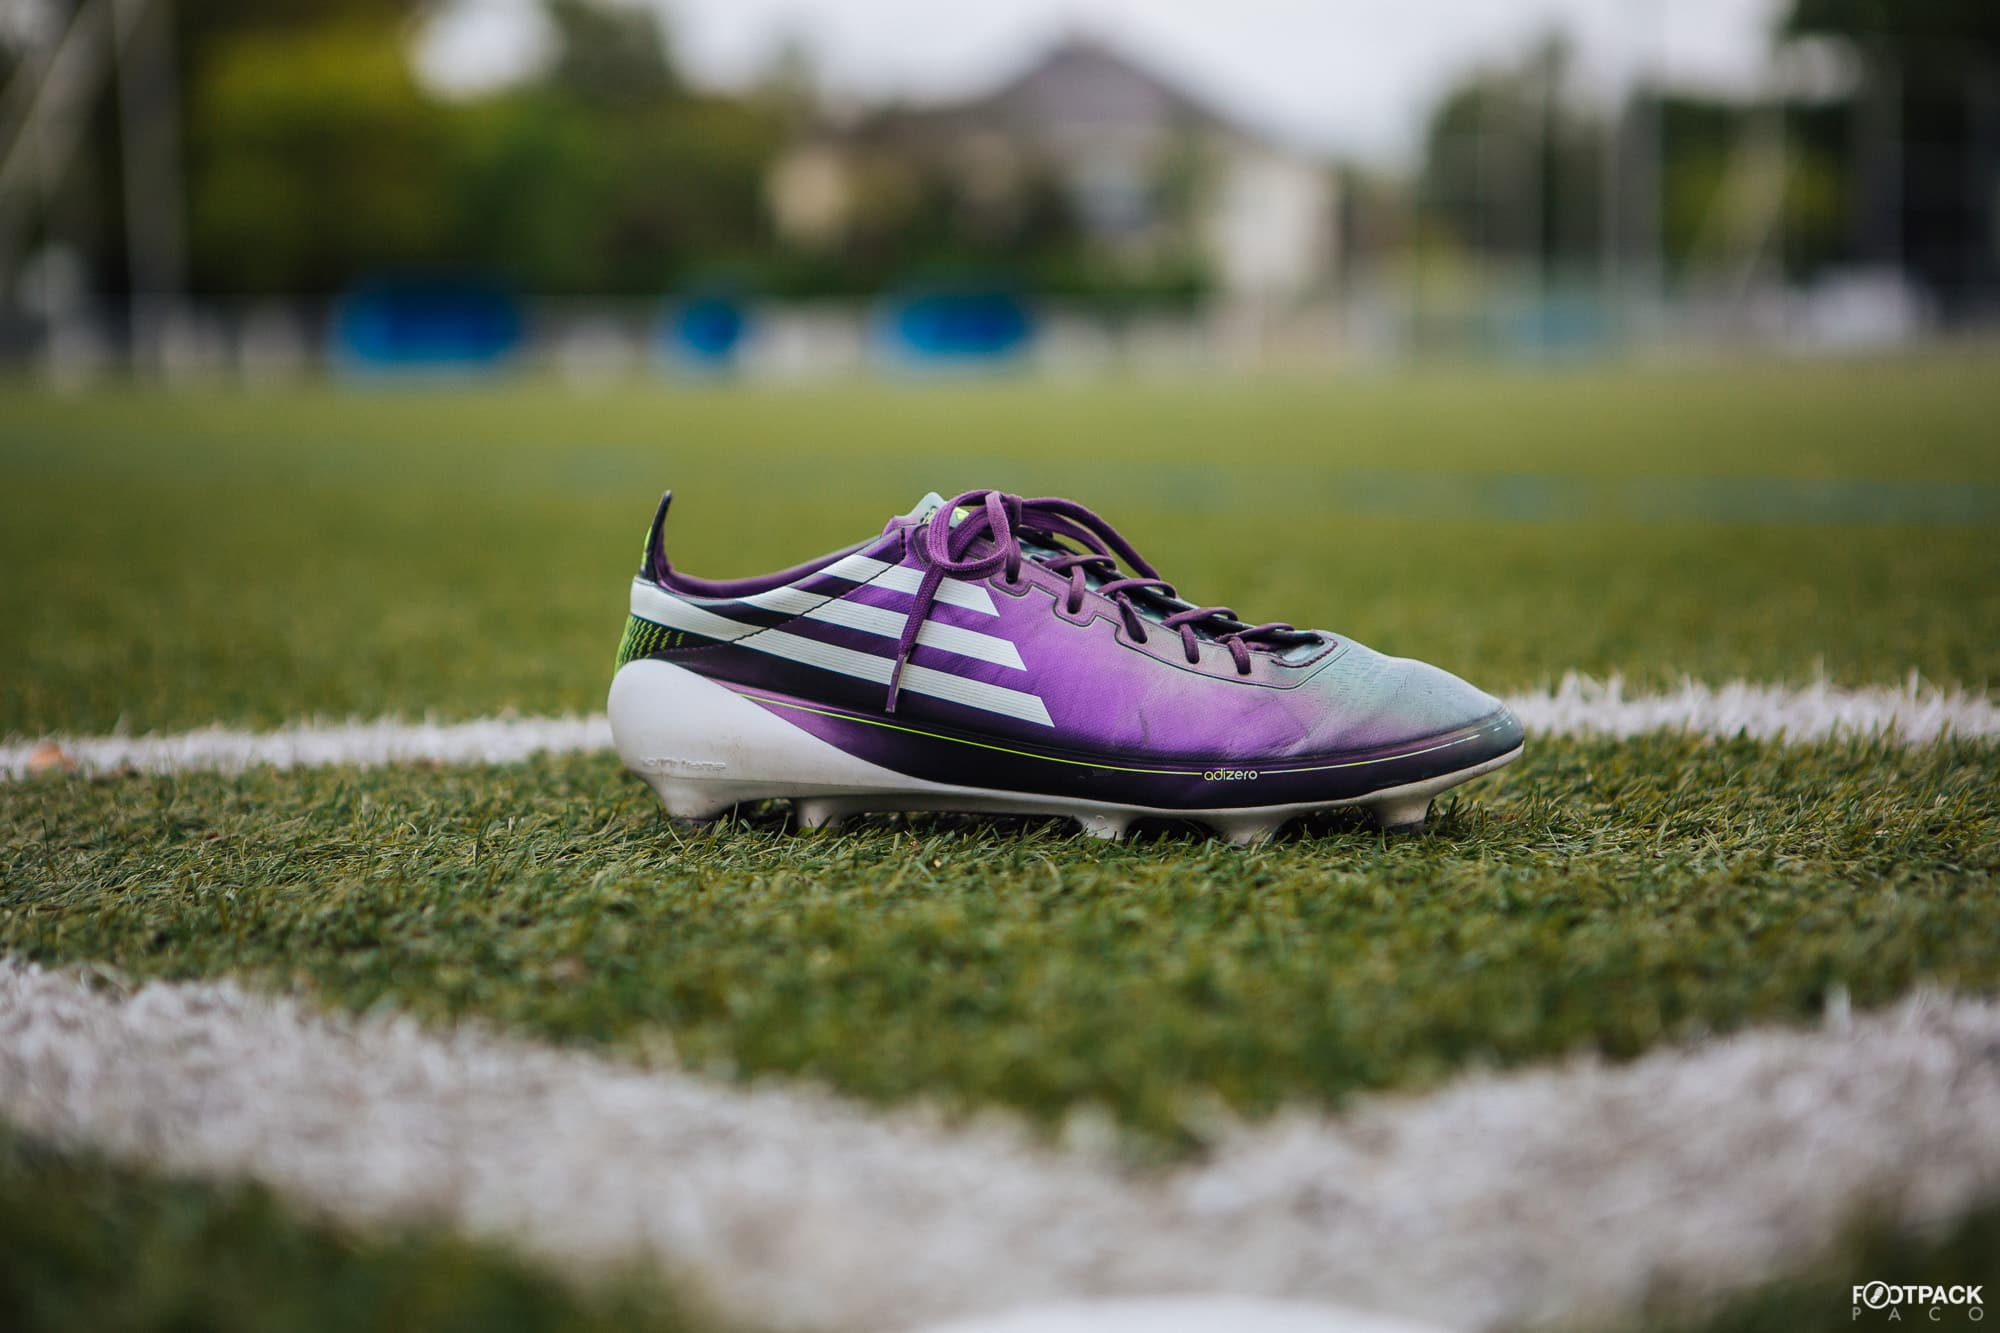 Chaussures-football-adidas-glitch-f50-mai-2018-1